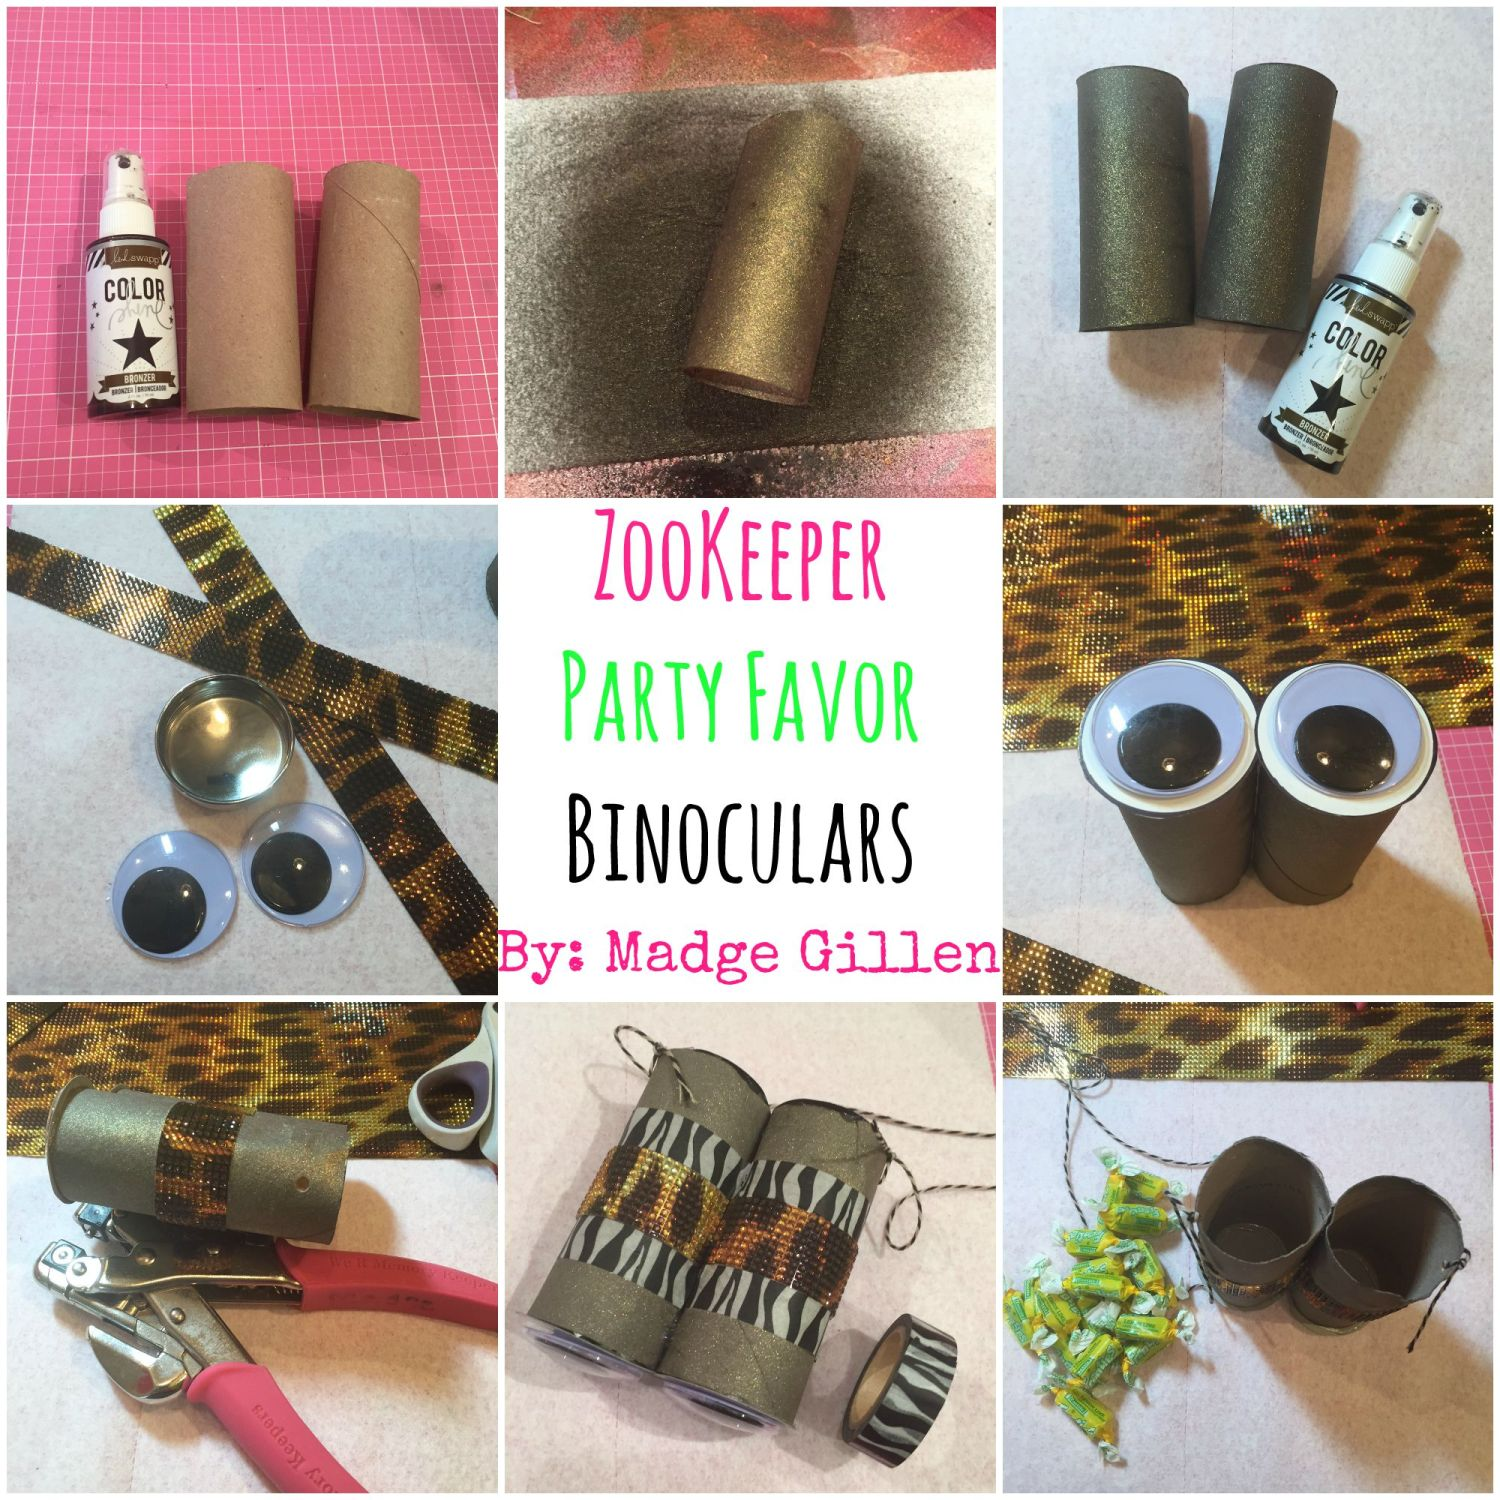 Zookeeper Party Favor Binoculars